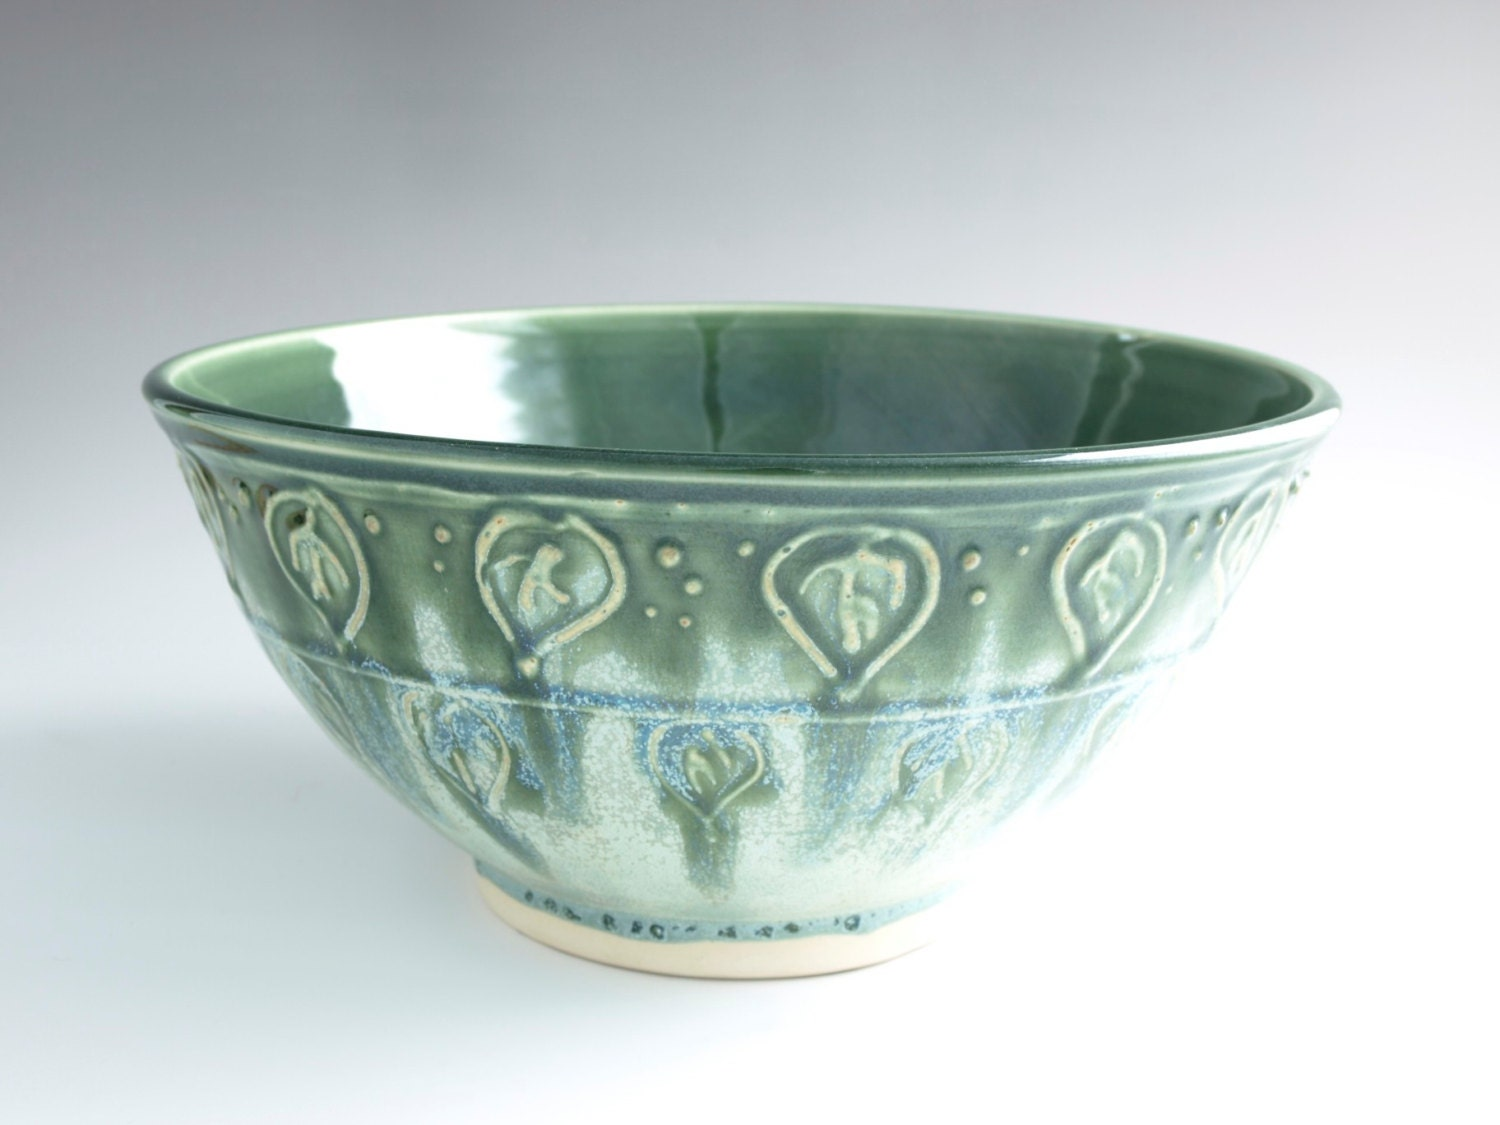 Extra Large Giant Size Serving Bowl Pottery Leaf Emerald Green Mint Chocolate Chip - Ready to Ship